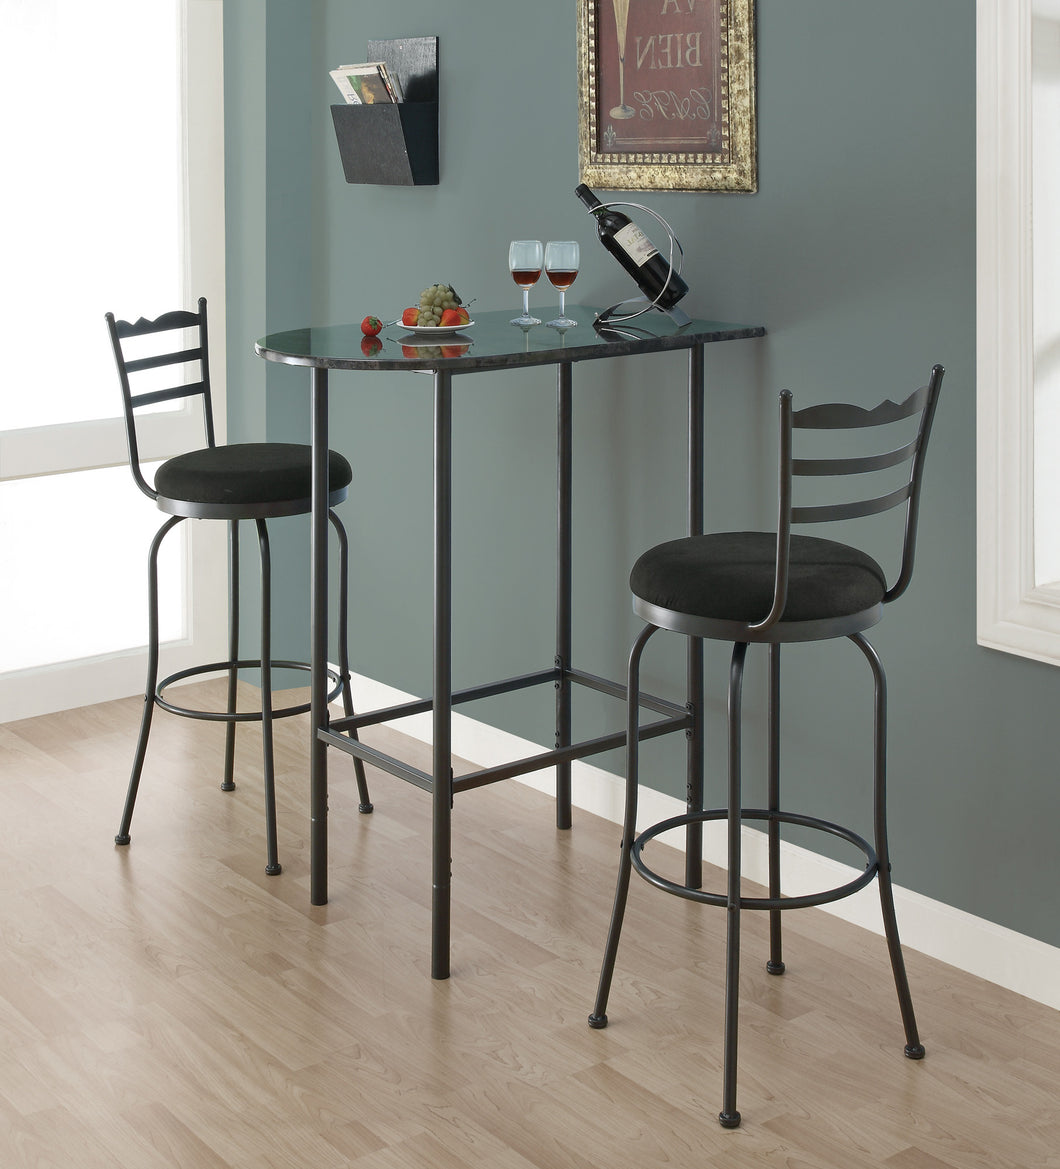 Candace & Basil Dining Table - 24